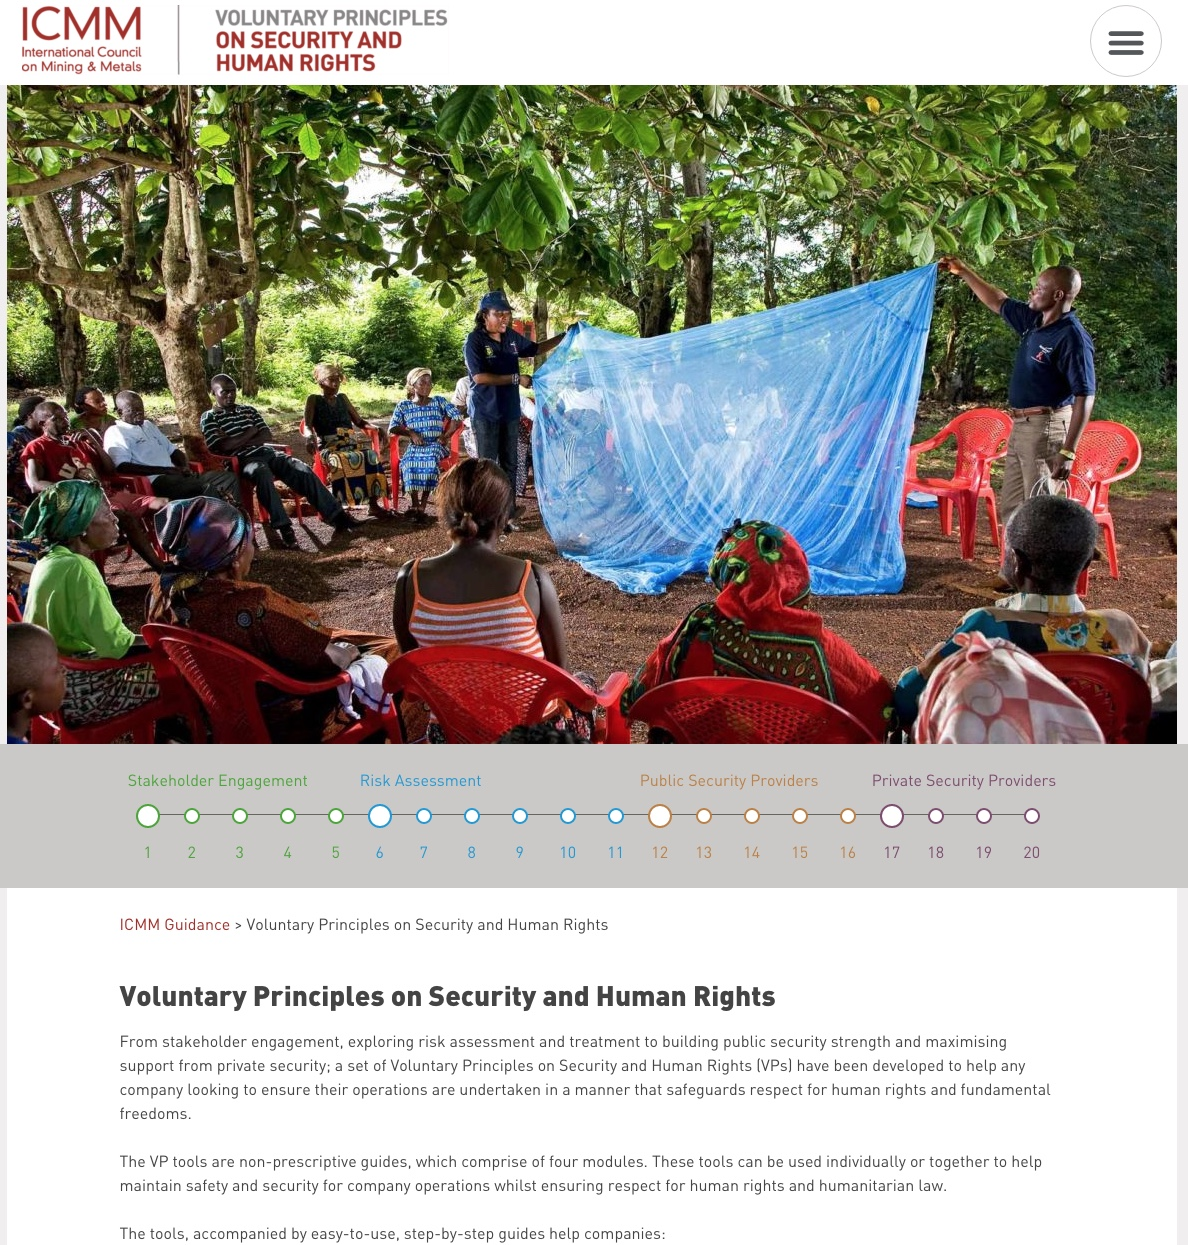 Voluntary Principles on Security and Human Rights